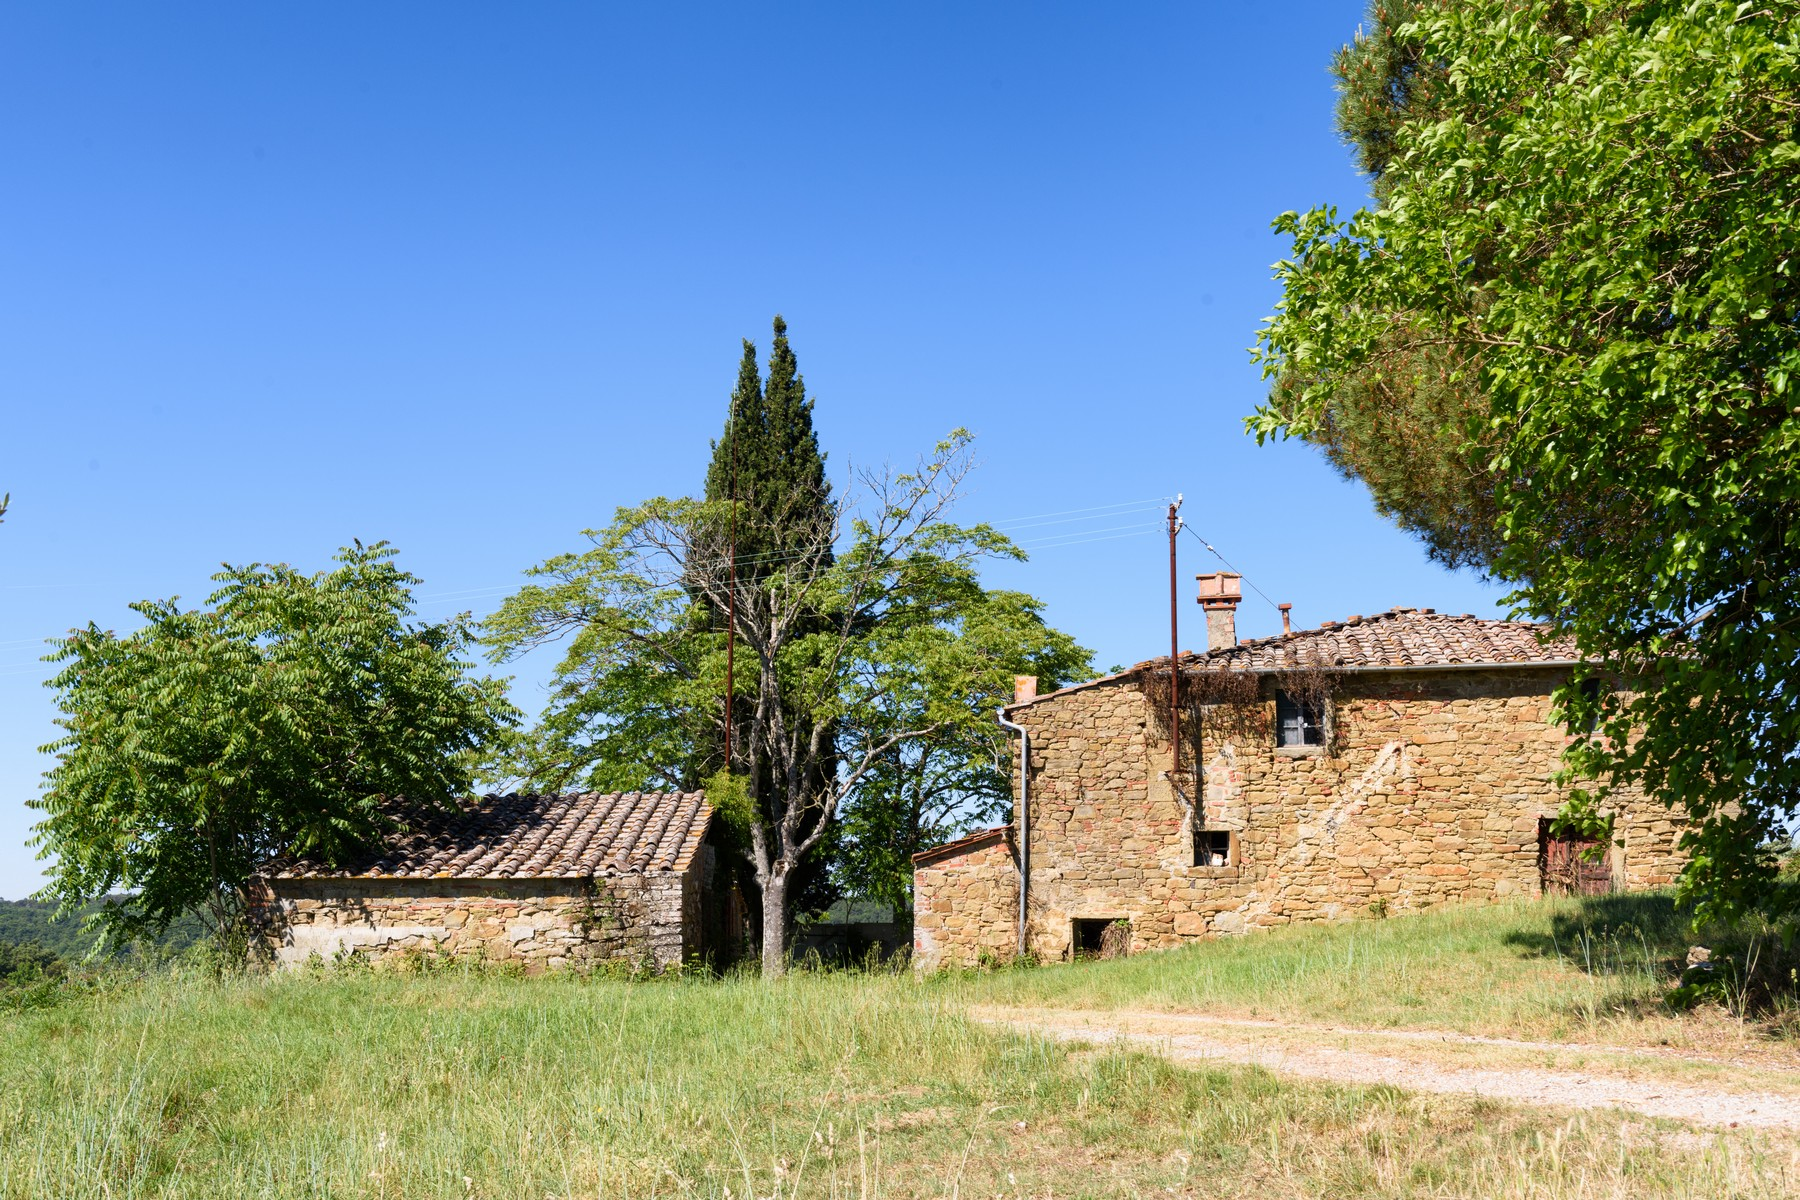 Single Family Home for Sale at Tuscan farmhouse with vineyards and olive groves Campanaio Monte San Savino, 52048 Italy